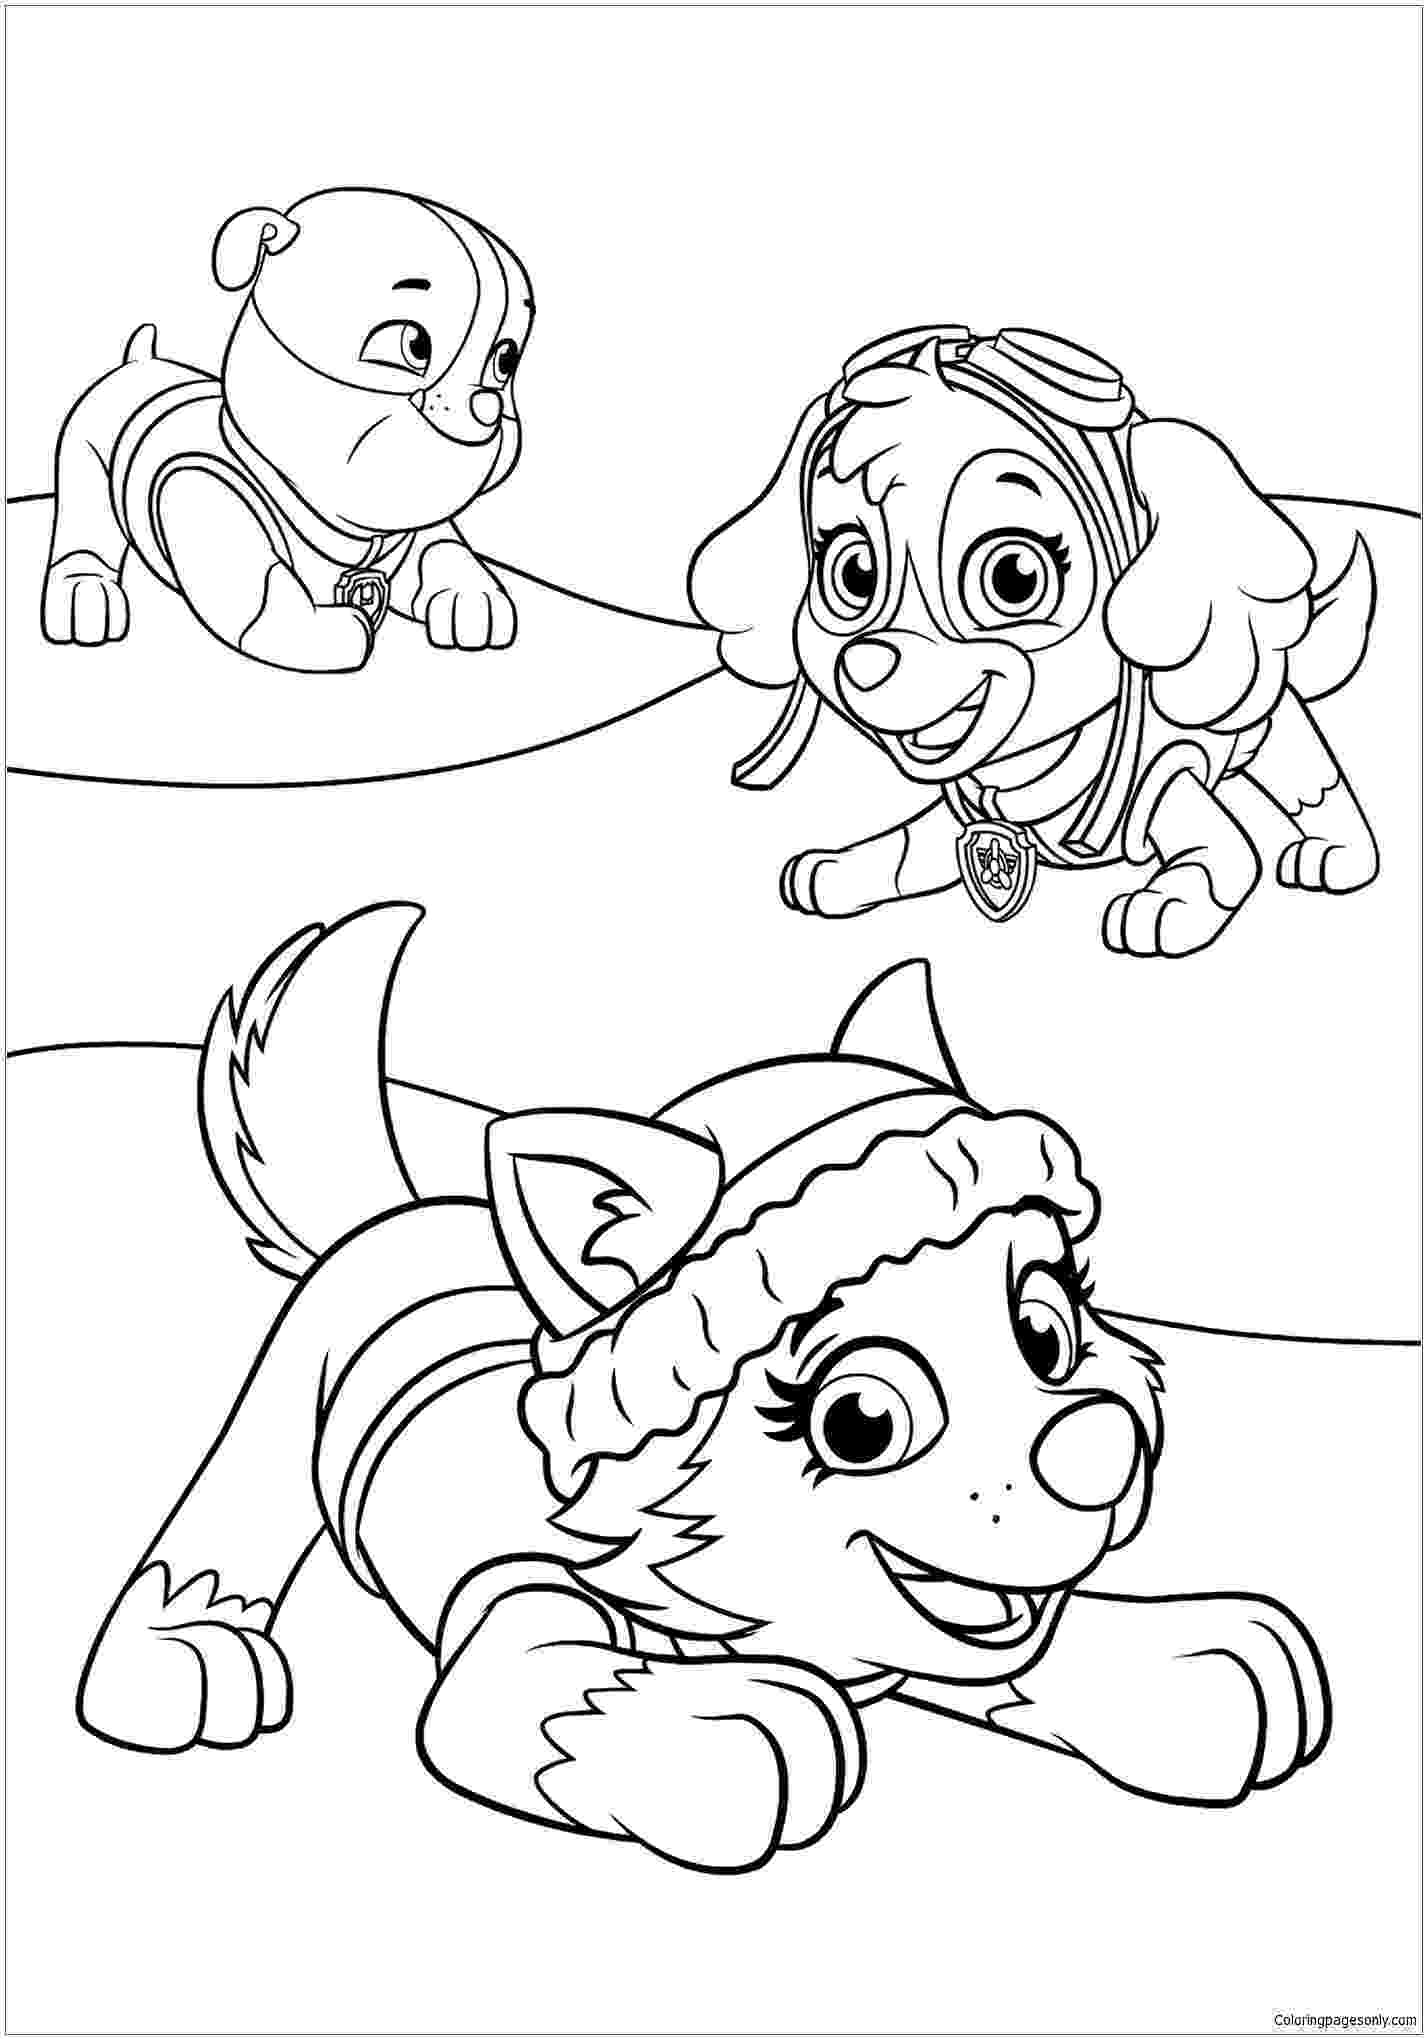 paw patrol coloring pages free get this paw patrol preschool coloring pages to print patrol pages coloring free paw